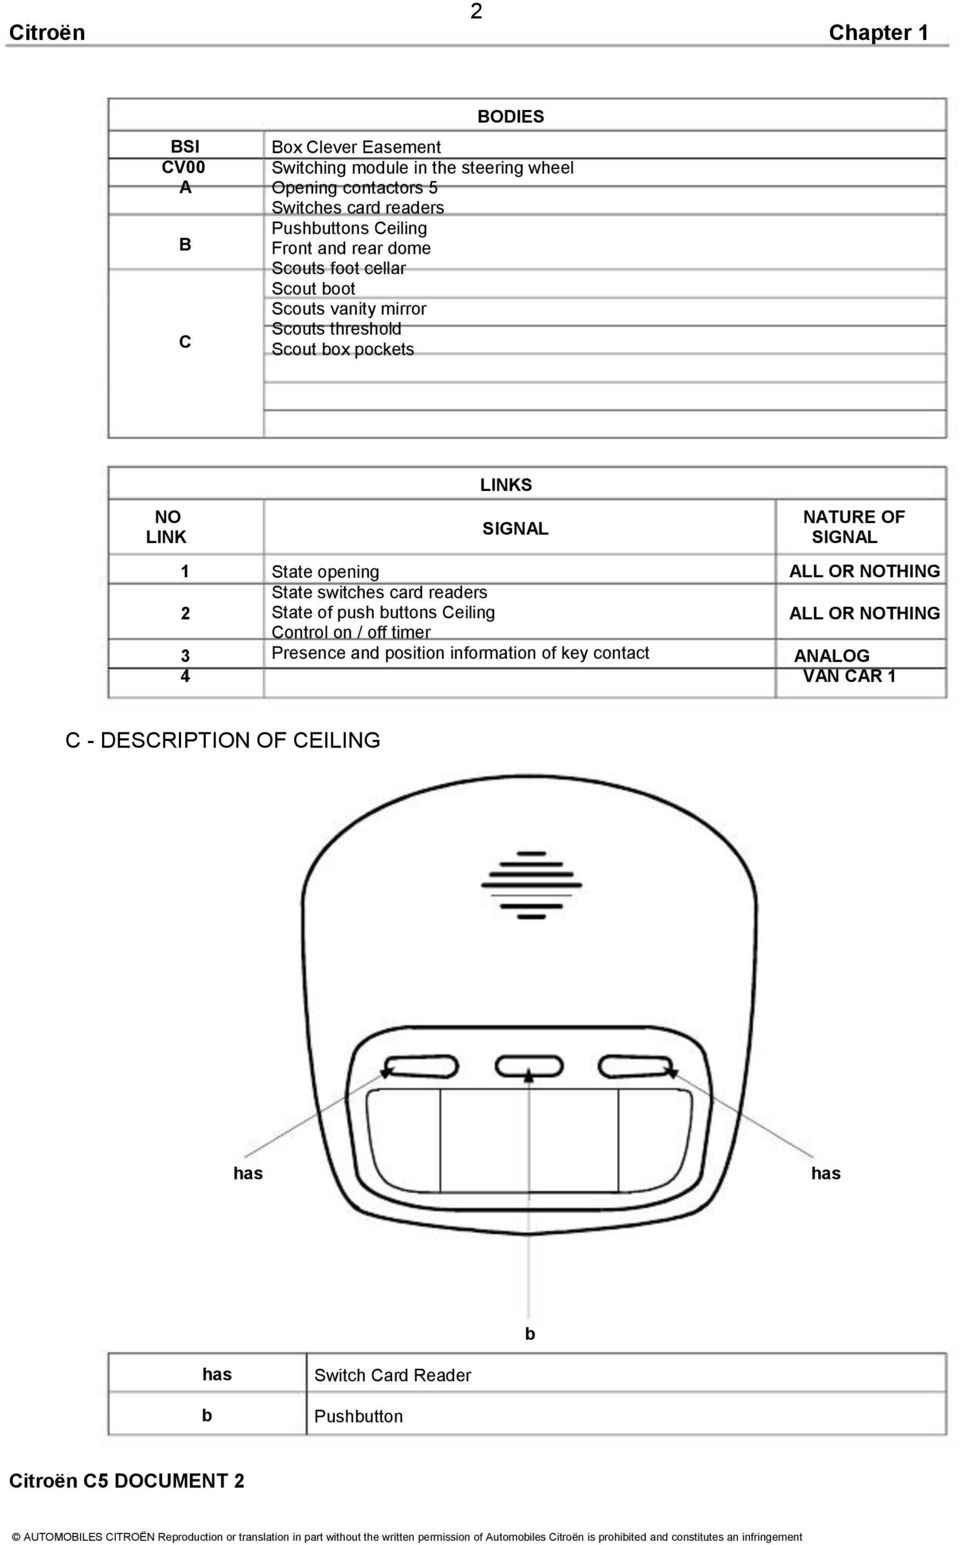 Citroen C5 Document 2 Pdf Xsara Airbag Wiring Diagram Links Signal State Opening Switches Card Readers Of Push Buttons Ceiling Control On